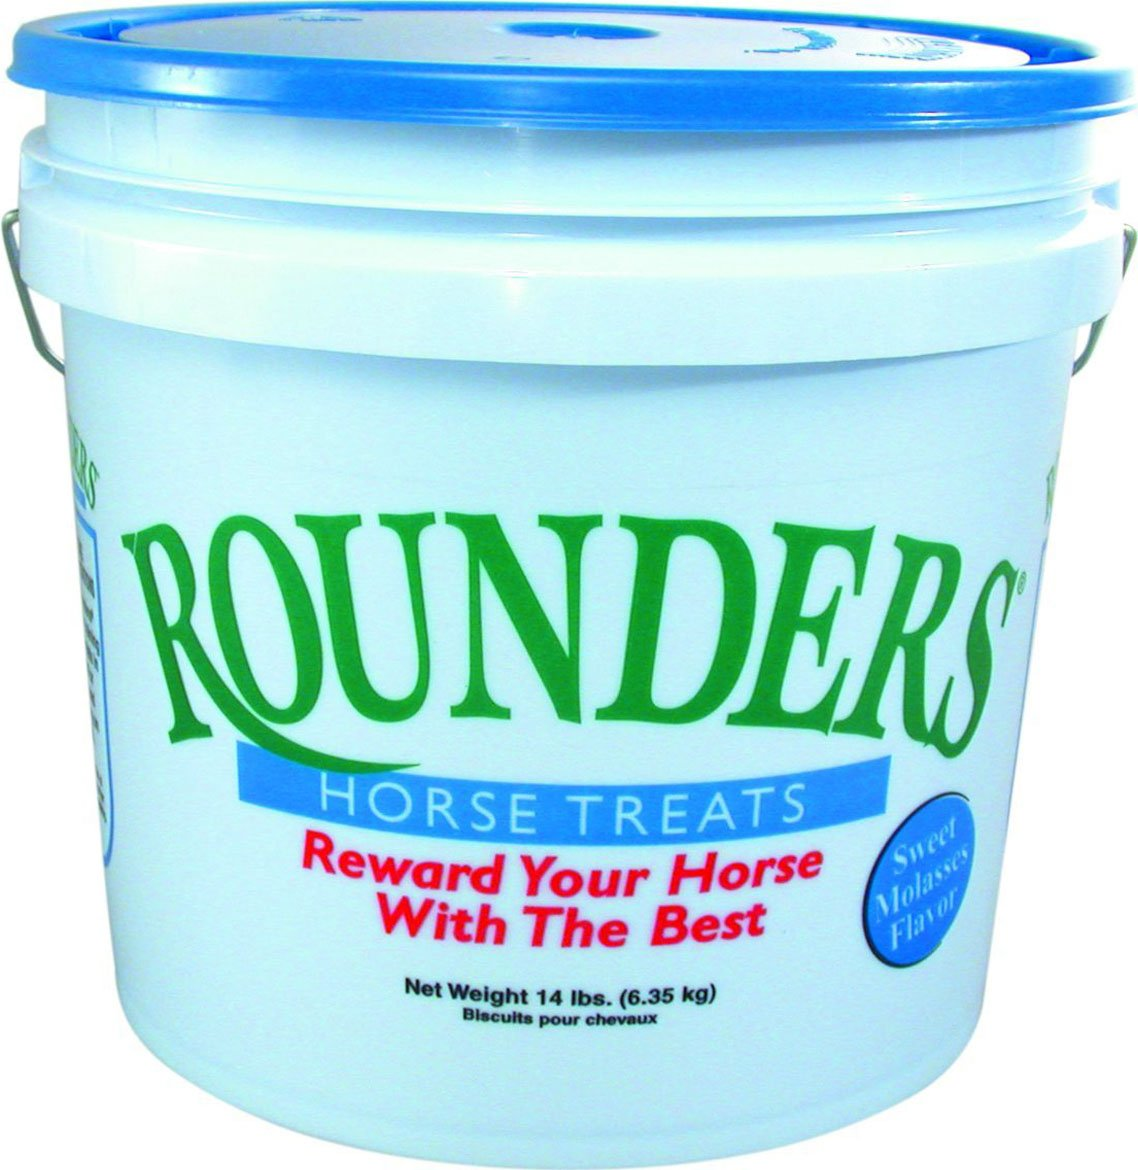 Kent Nutrition Group-Bsf 426 Molasses Rounder'S Horse Treat, 14 Lb by KENT NUTRITION GROUP/BSF